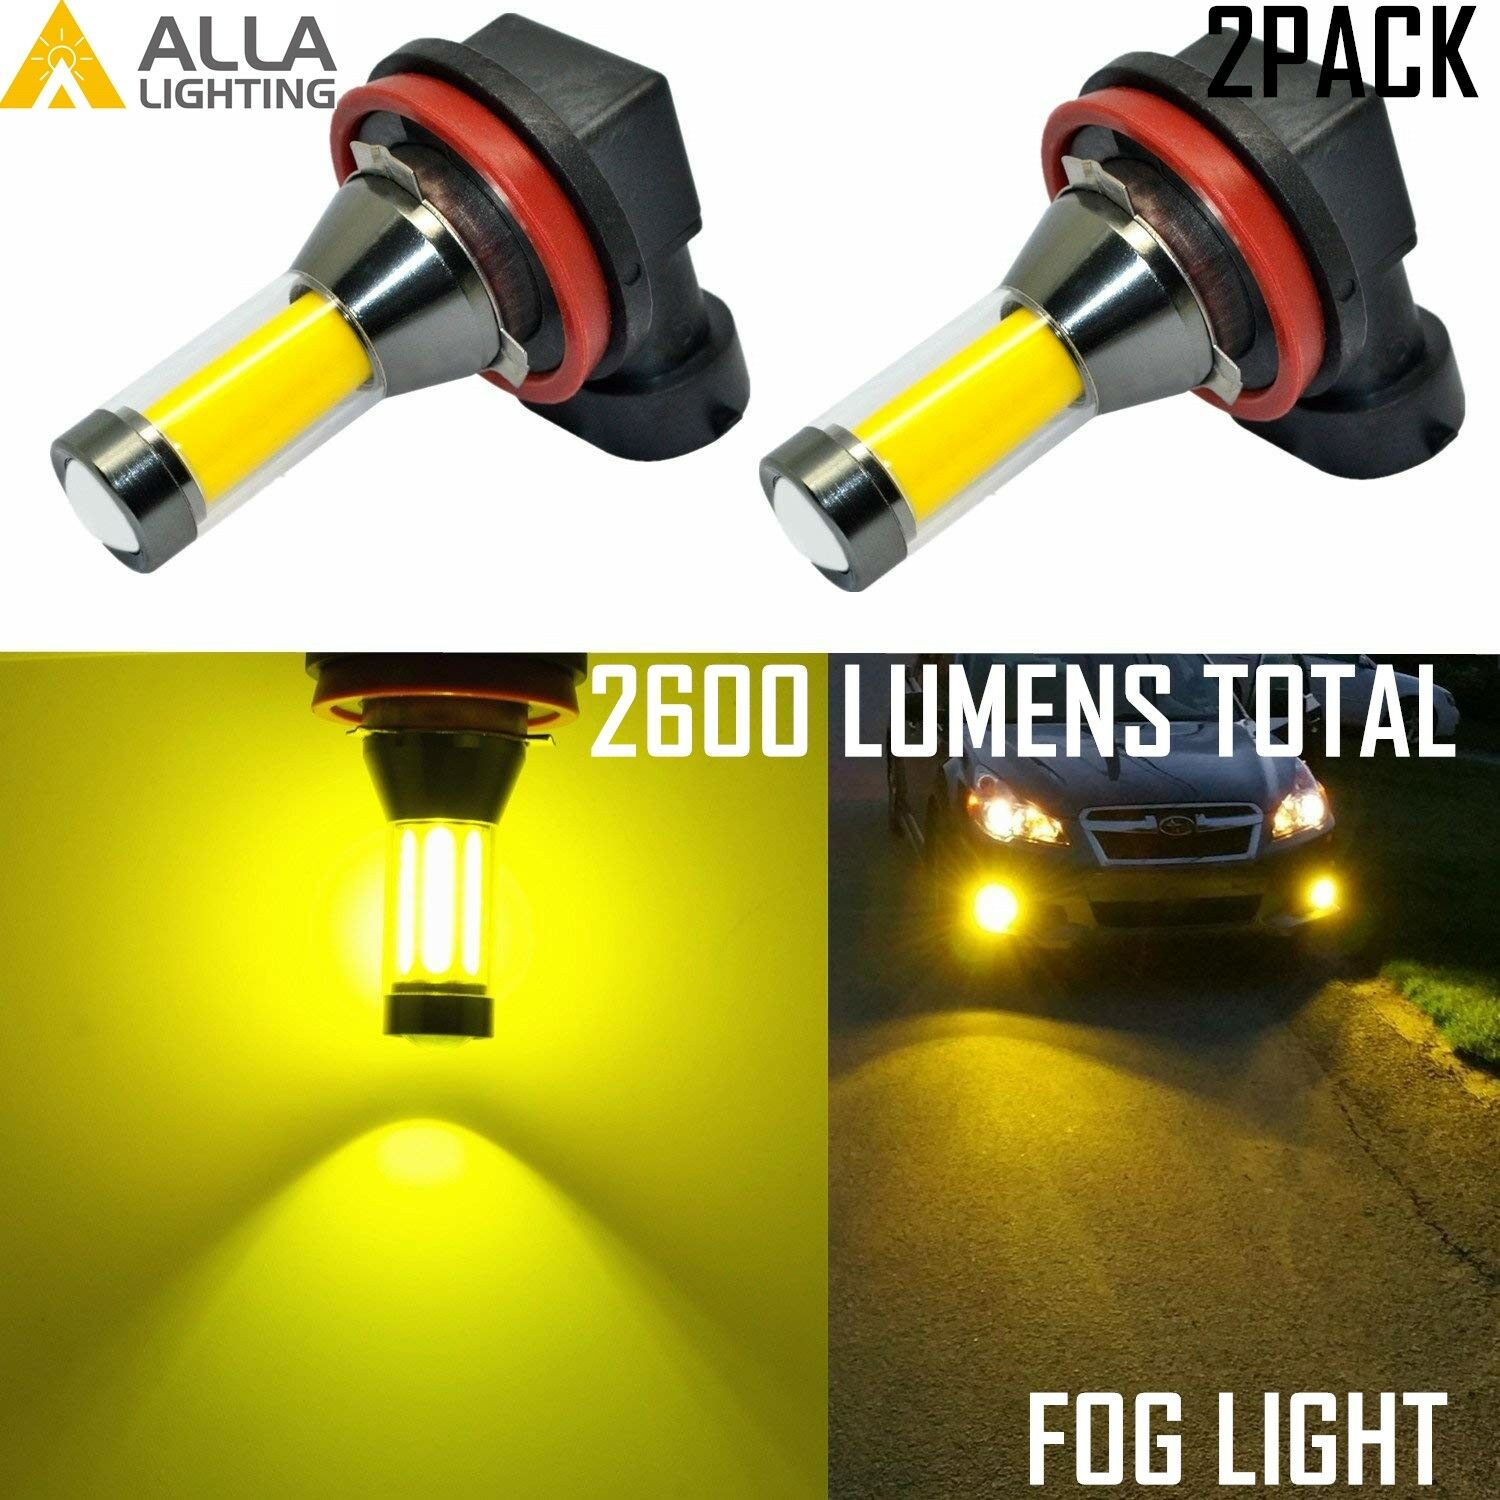 AllaLighting LED H11 Driving Fog Light Bulb Lamp 3000K Bright Yellow Replacement